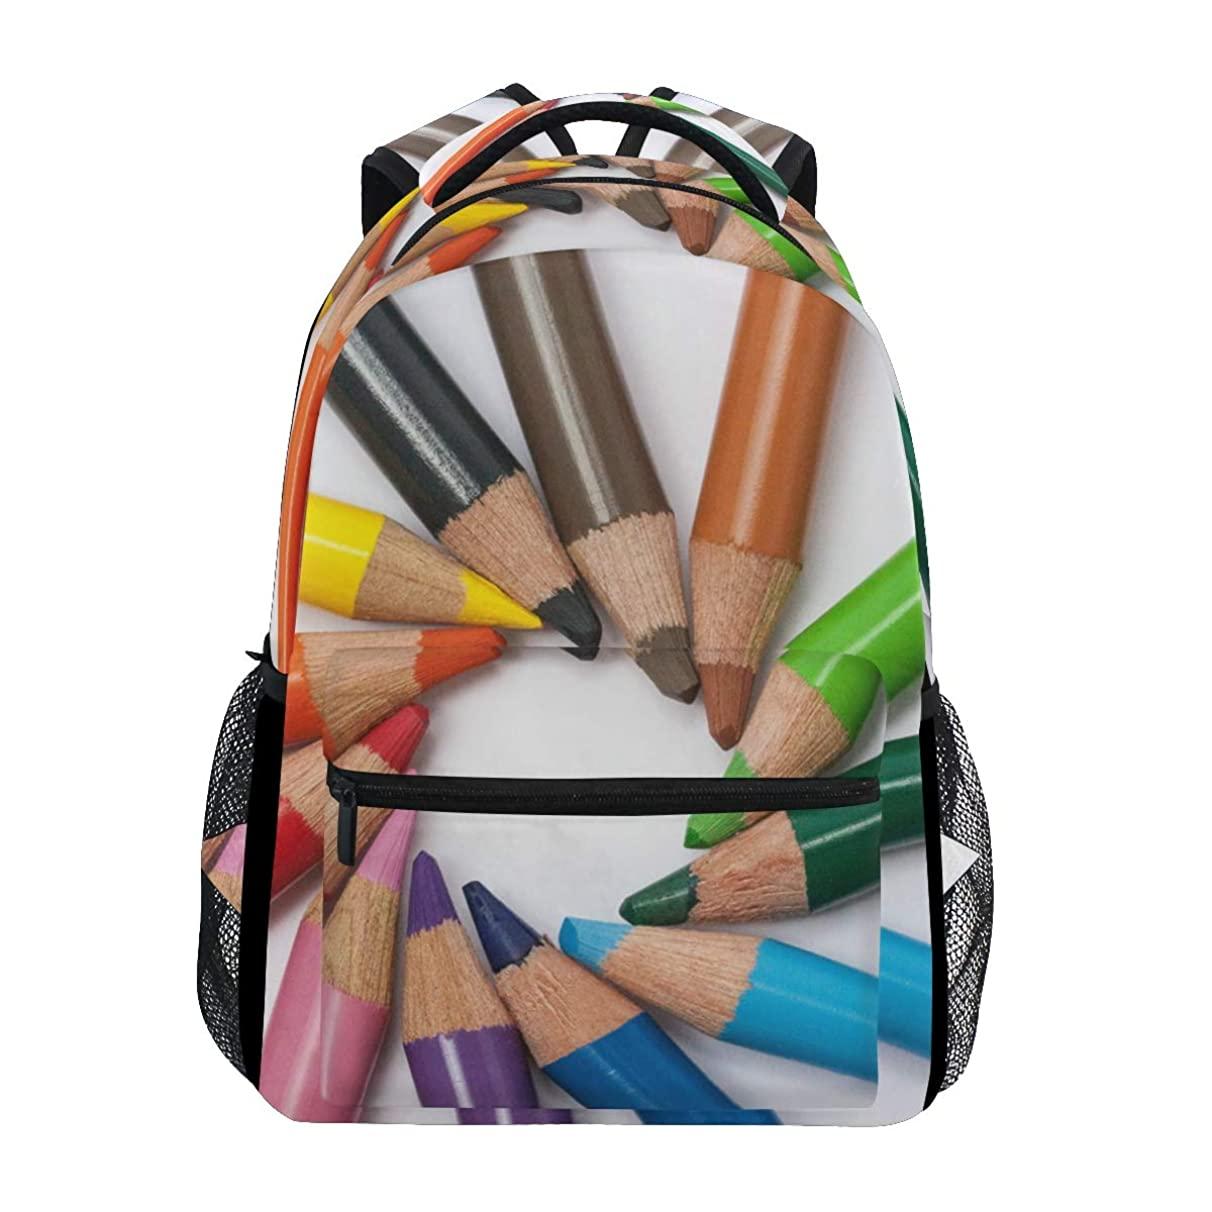 MONTOJ Colored Pencils in Circle Travel Bag Campus Backpack